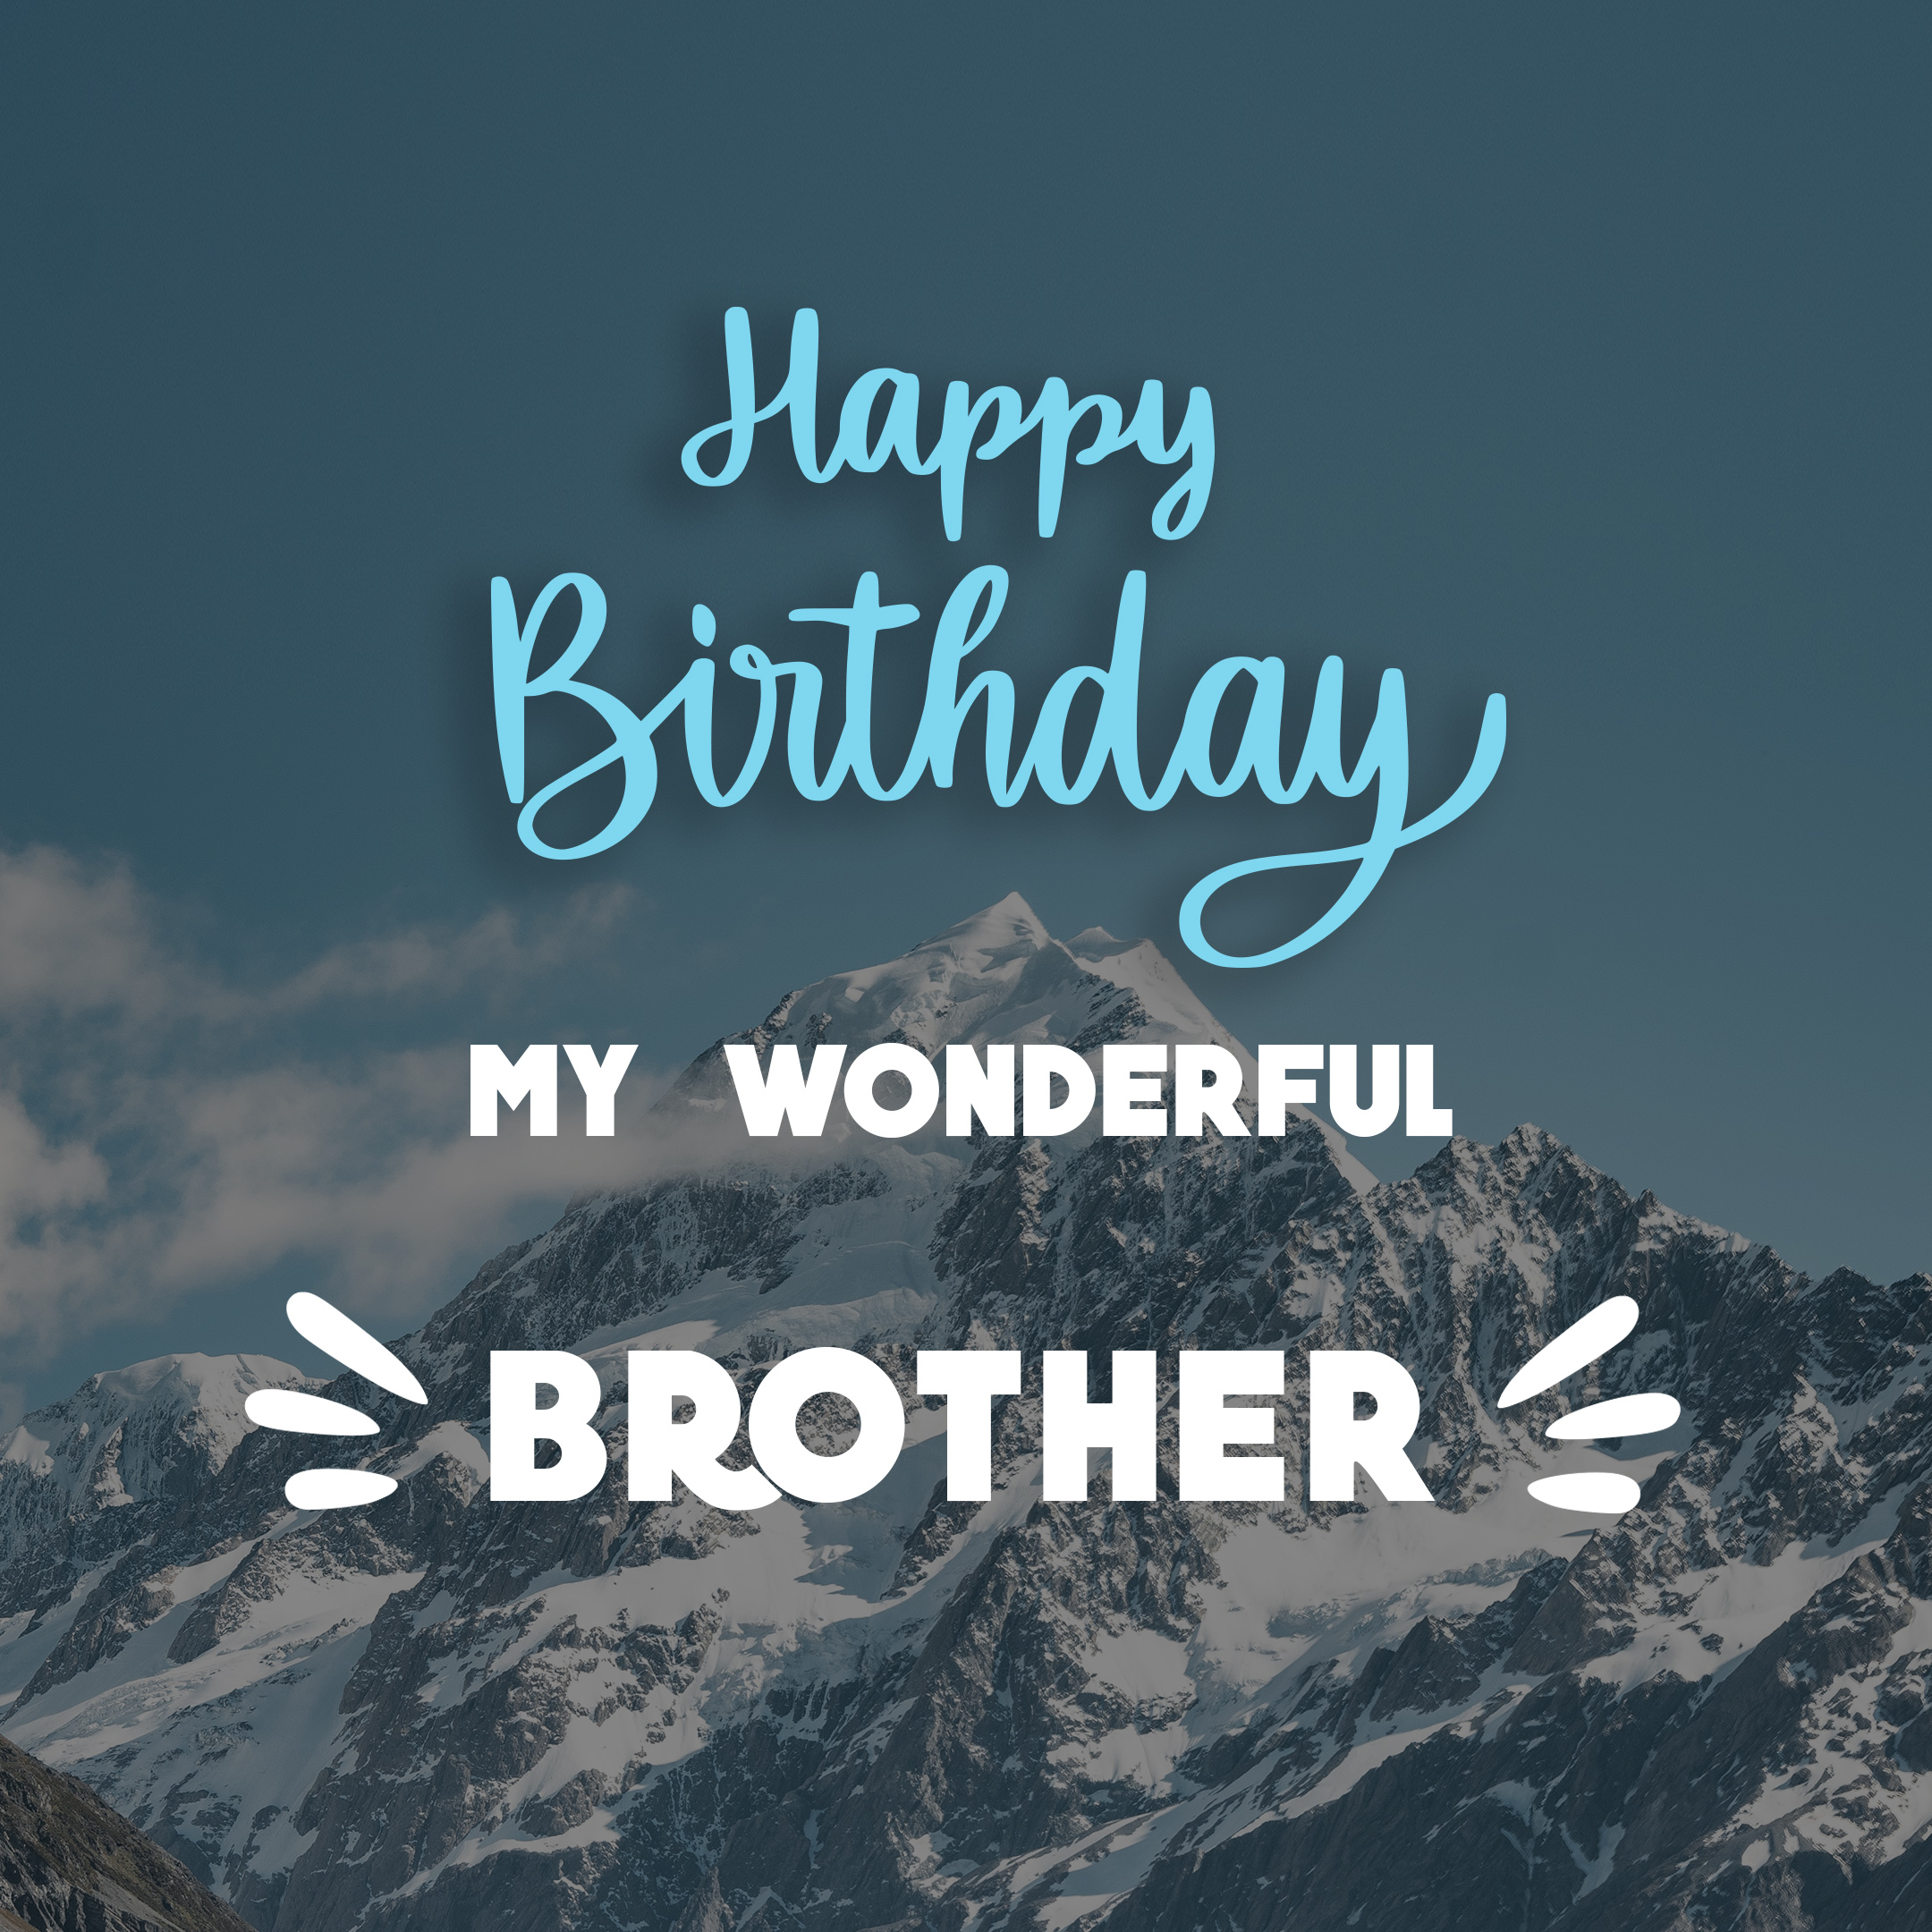 Free Happy Birthday Image For Brother With Mountains - birthdayimg.com